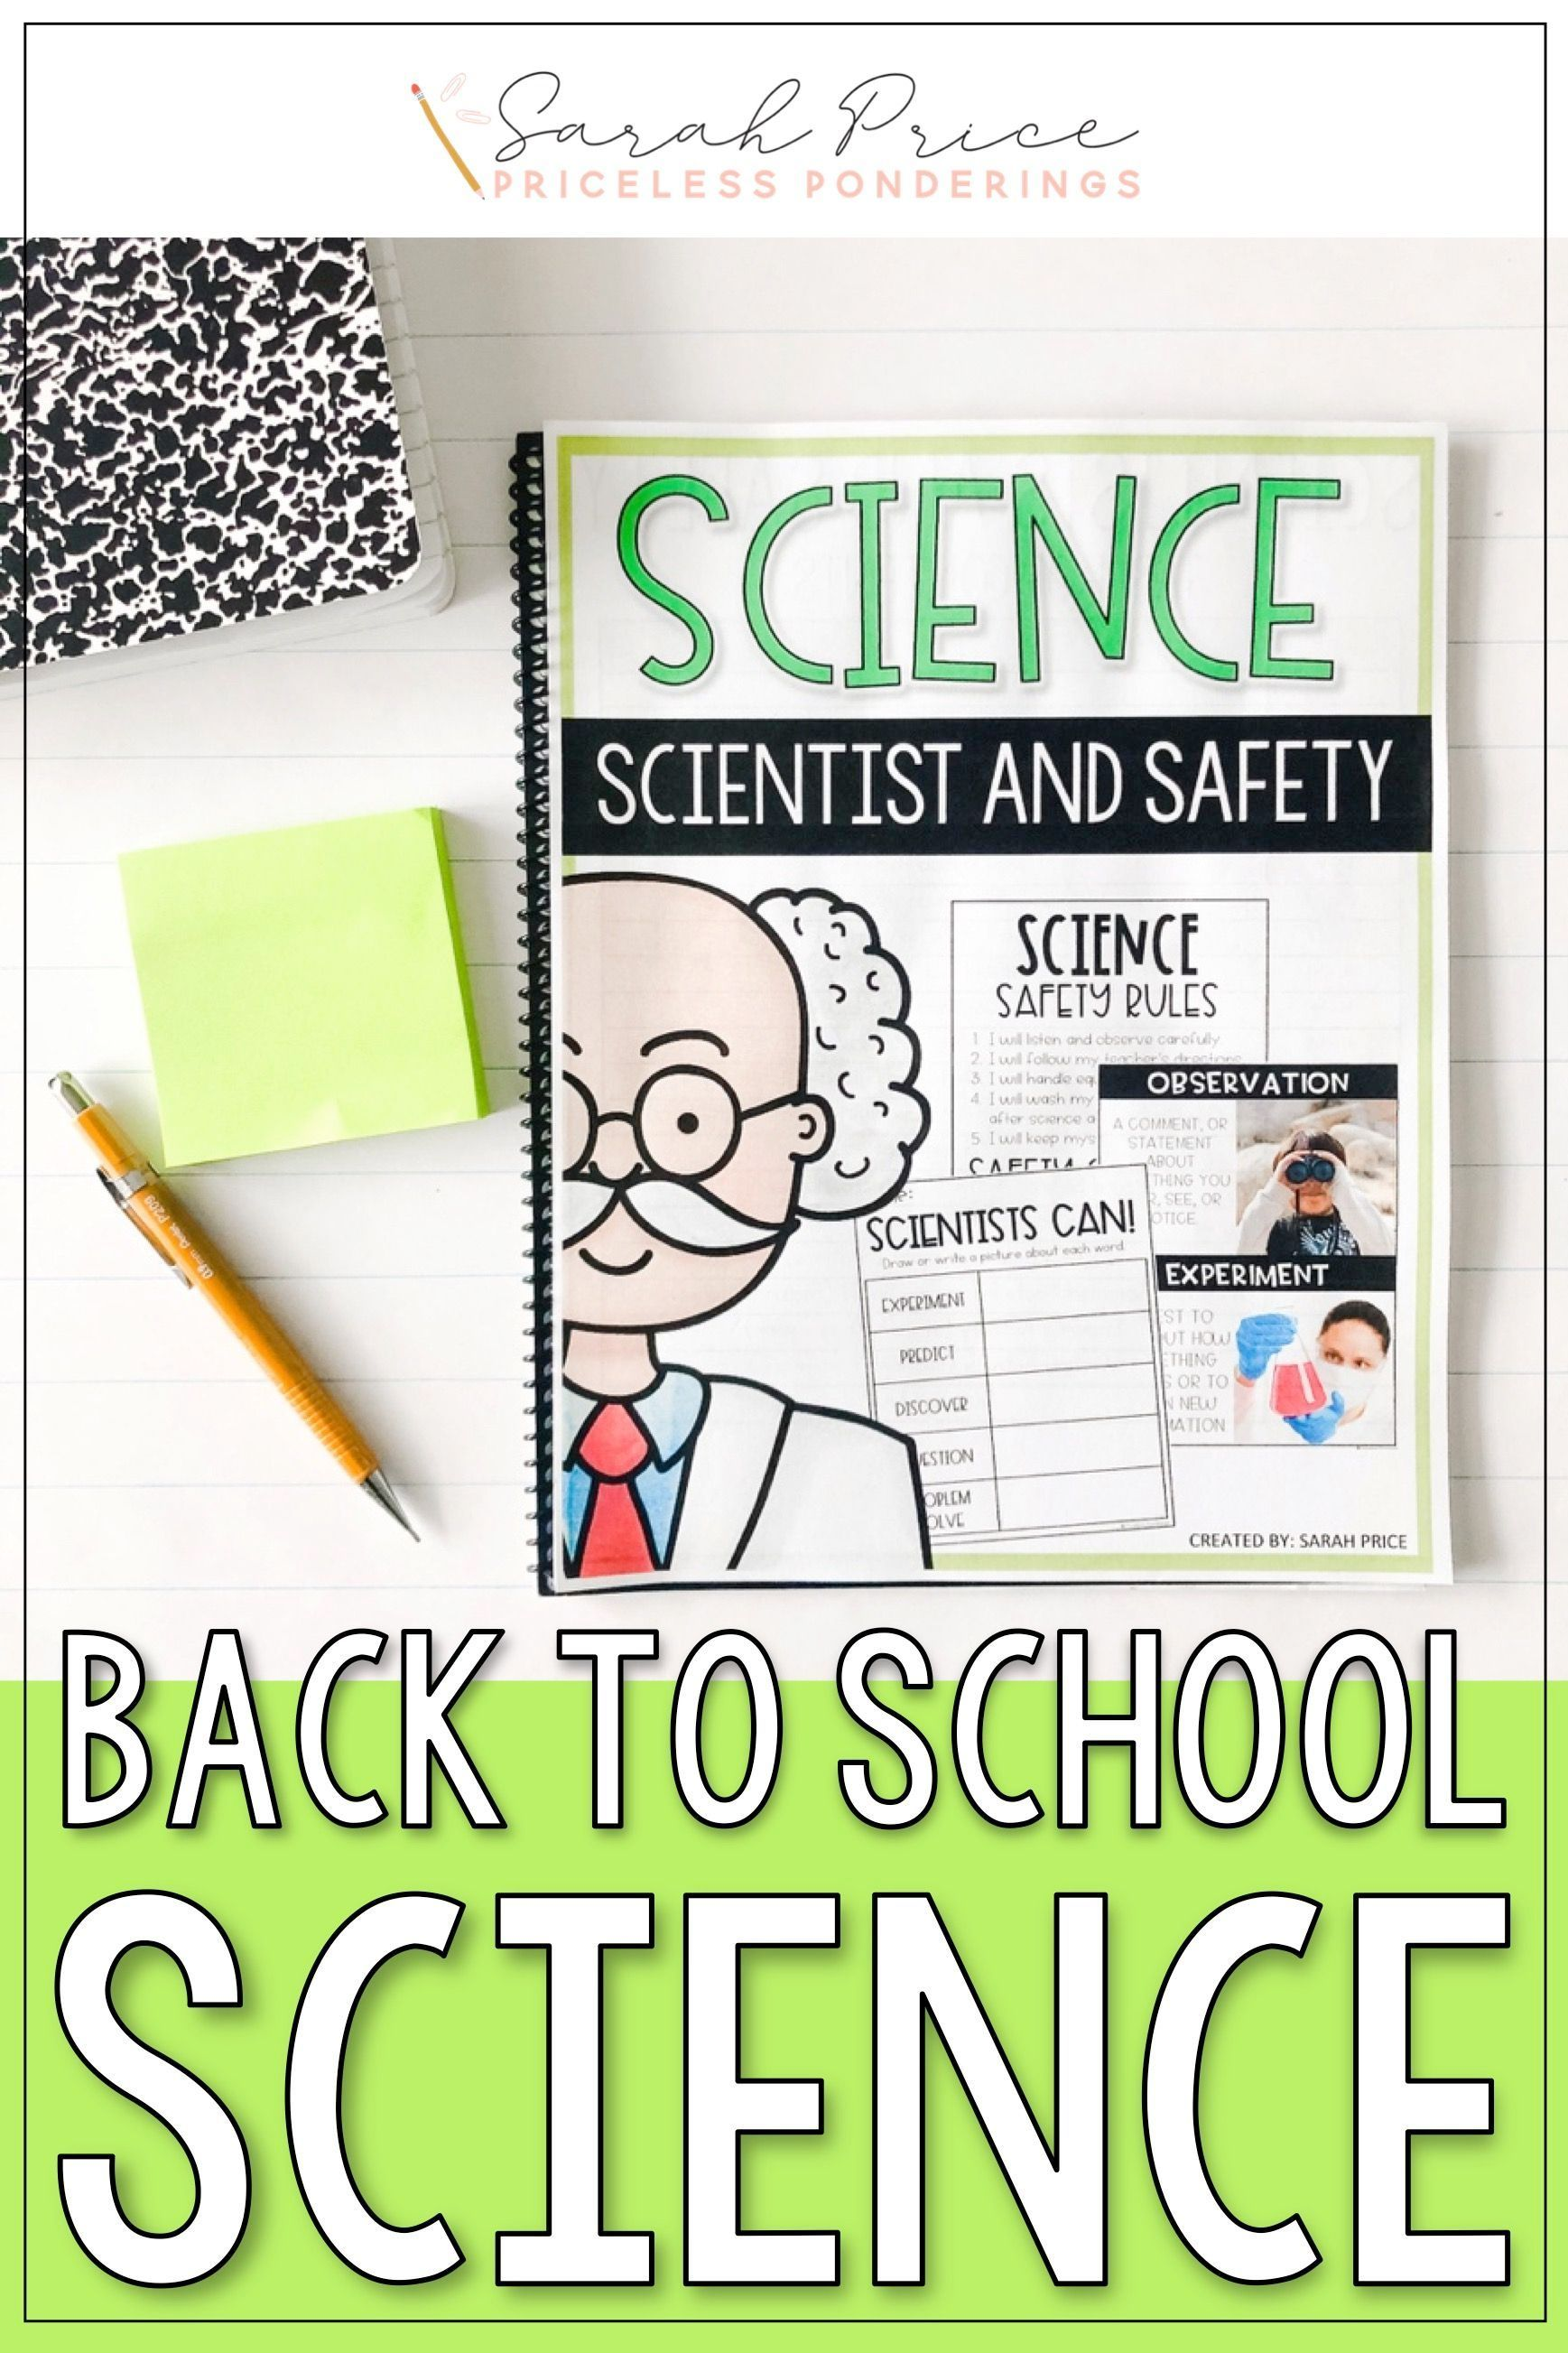 What Is A Scientist Science Safety And Science Tools Activities Science Tools Activities Science Safety What Is A Scientist